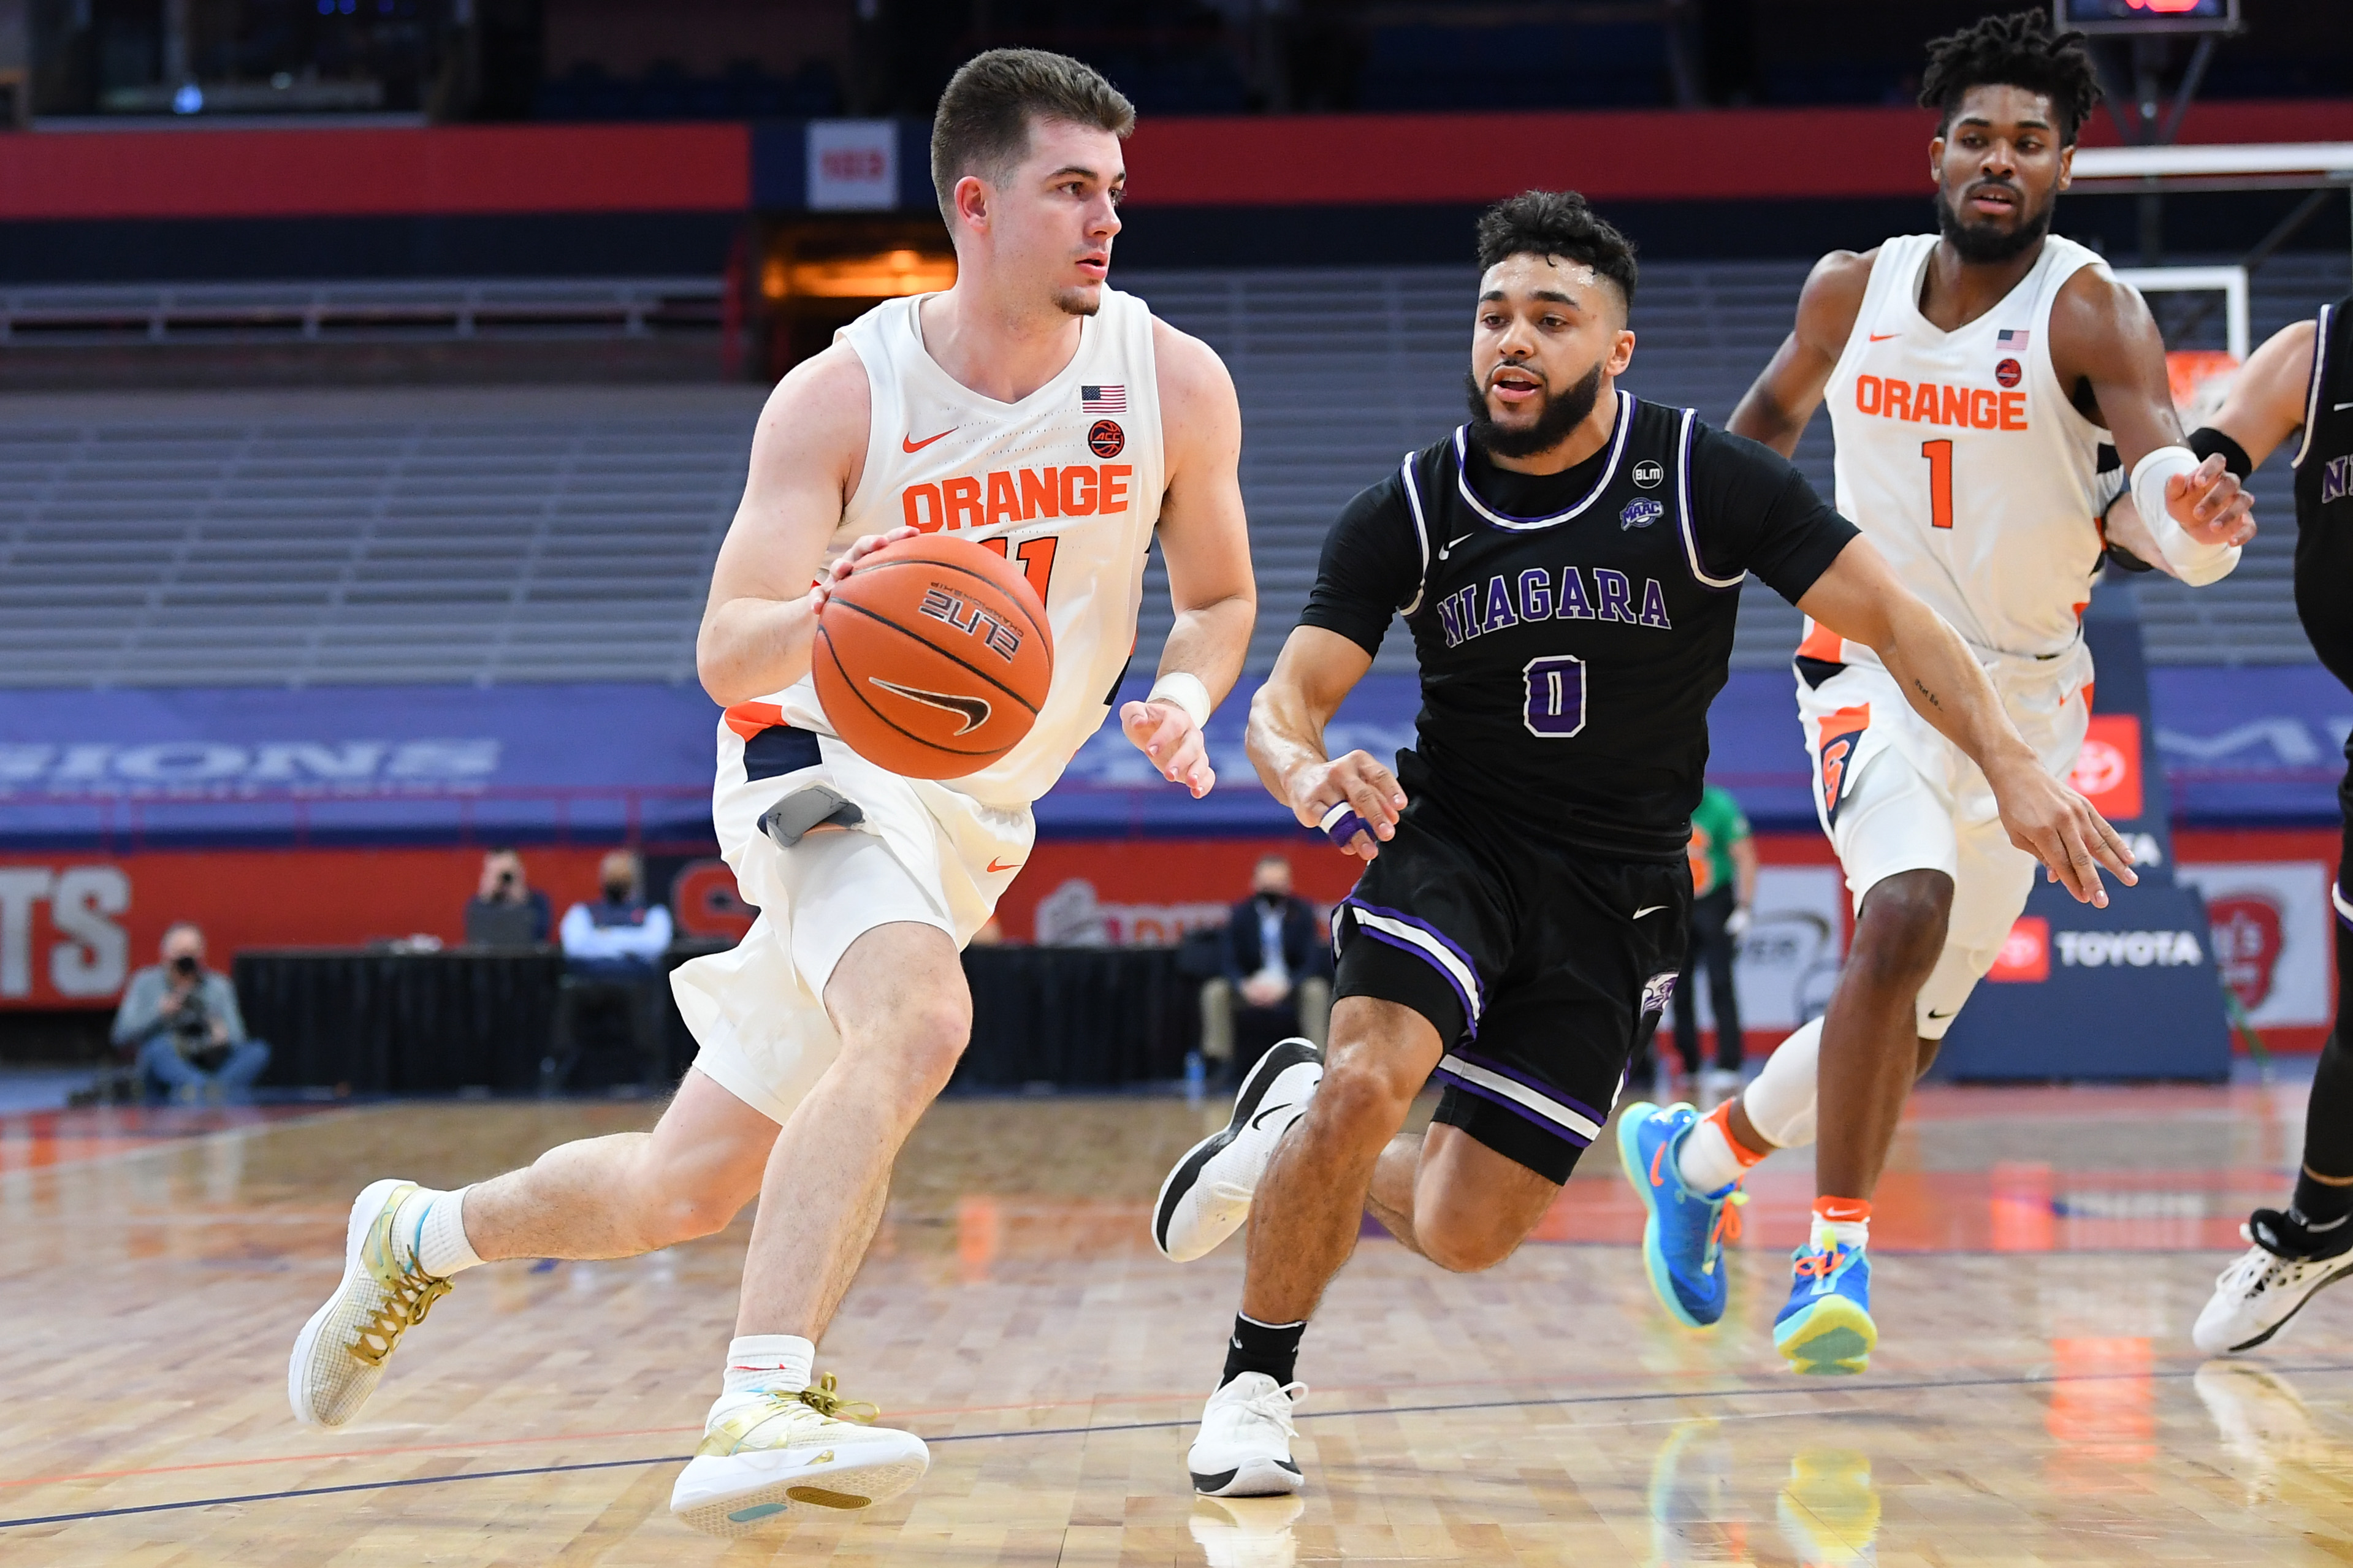 Dec 3, 2020; Syracuse, New York, USA; Syracuse Orange guard Joseph Girard III (11) drives to the basket as Niagara Purple Eagles guard Justin Roberts (0) defends during the first half at the Carrier Dome. Mandatory Credit: Rich Barnes-USA TODAY Sports